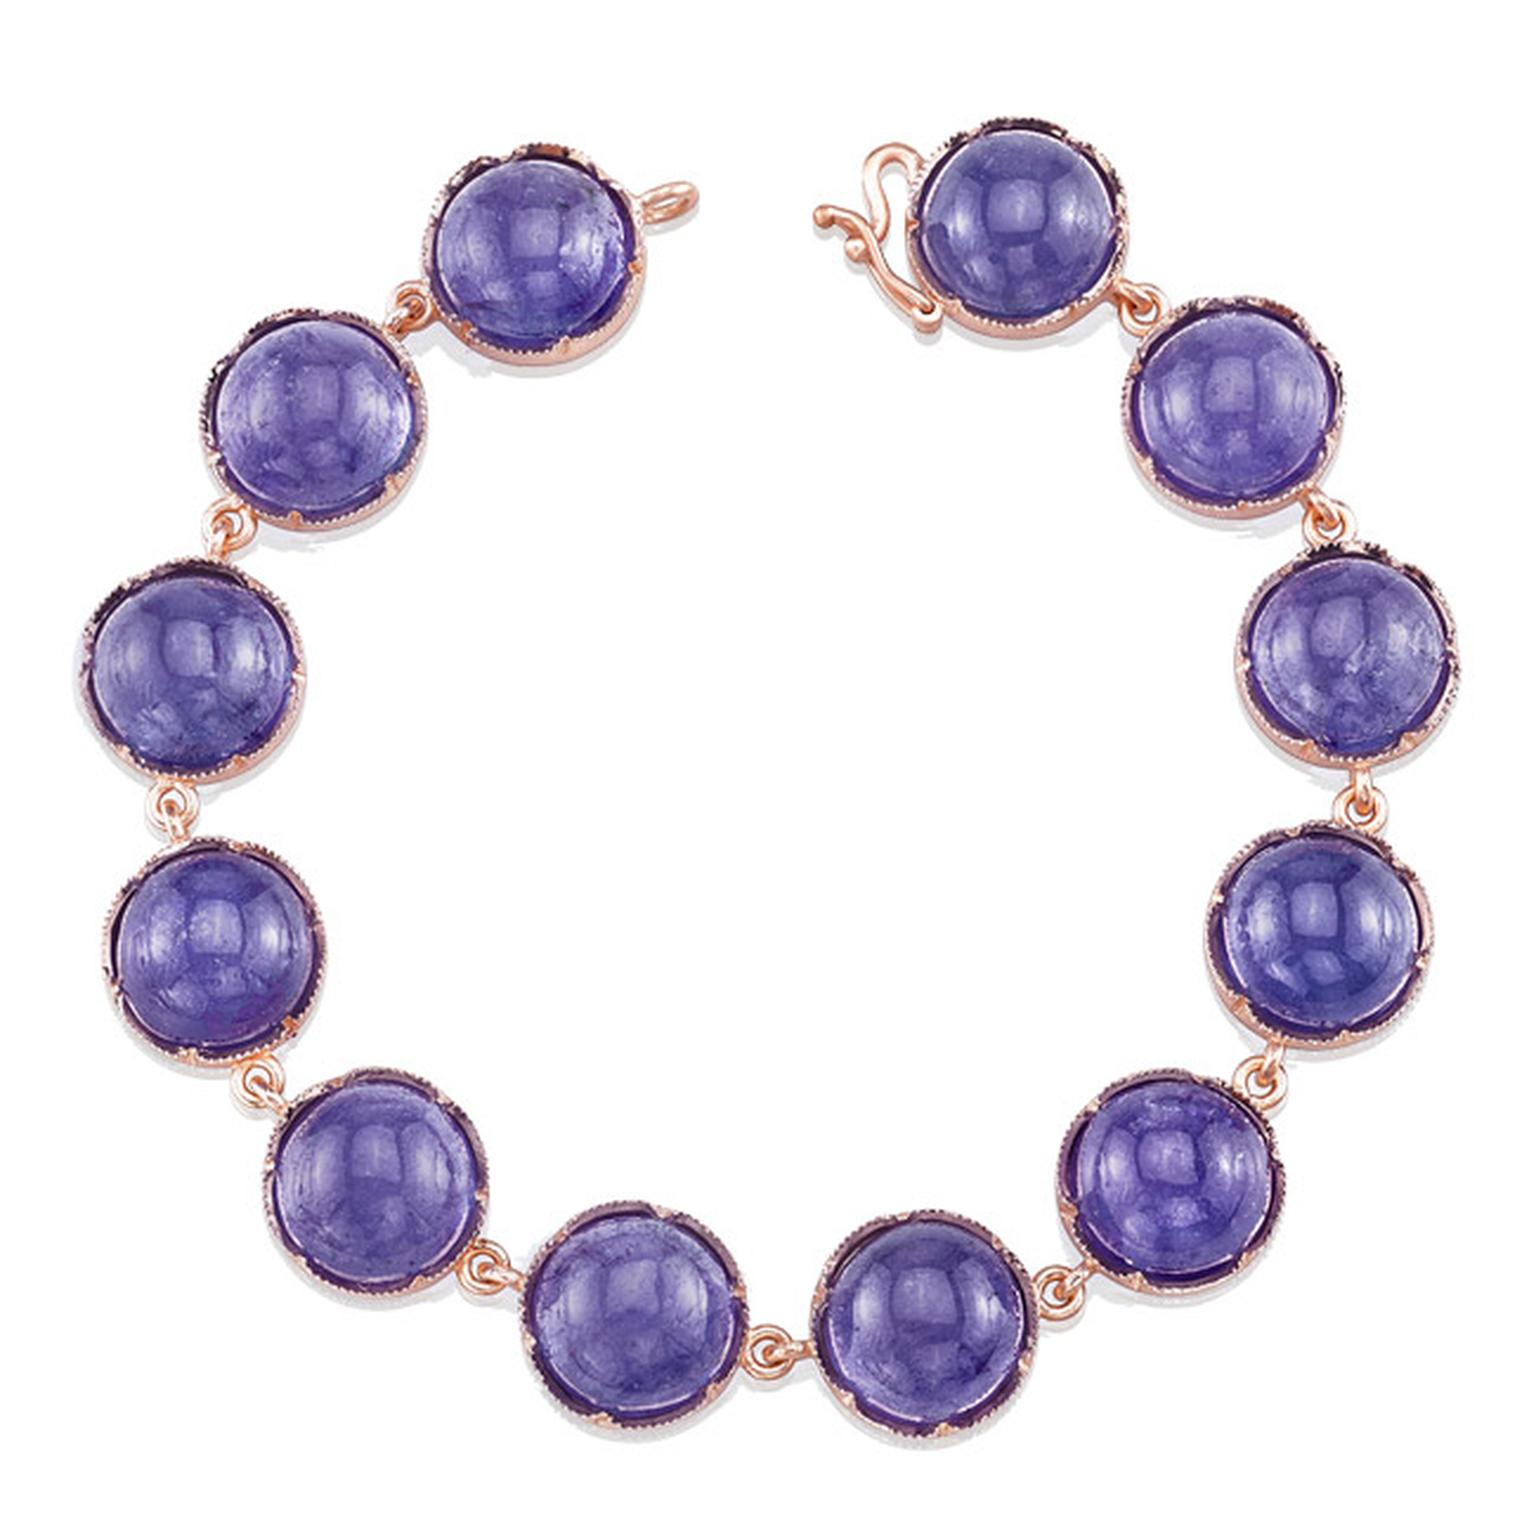 Irene-Neuwirth-Tanzanite-Bracelet-Main